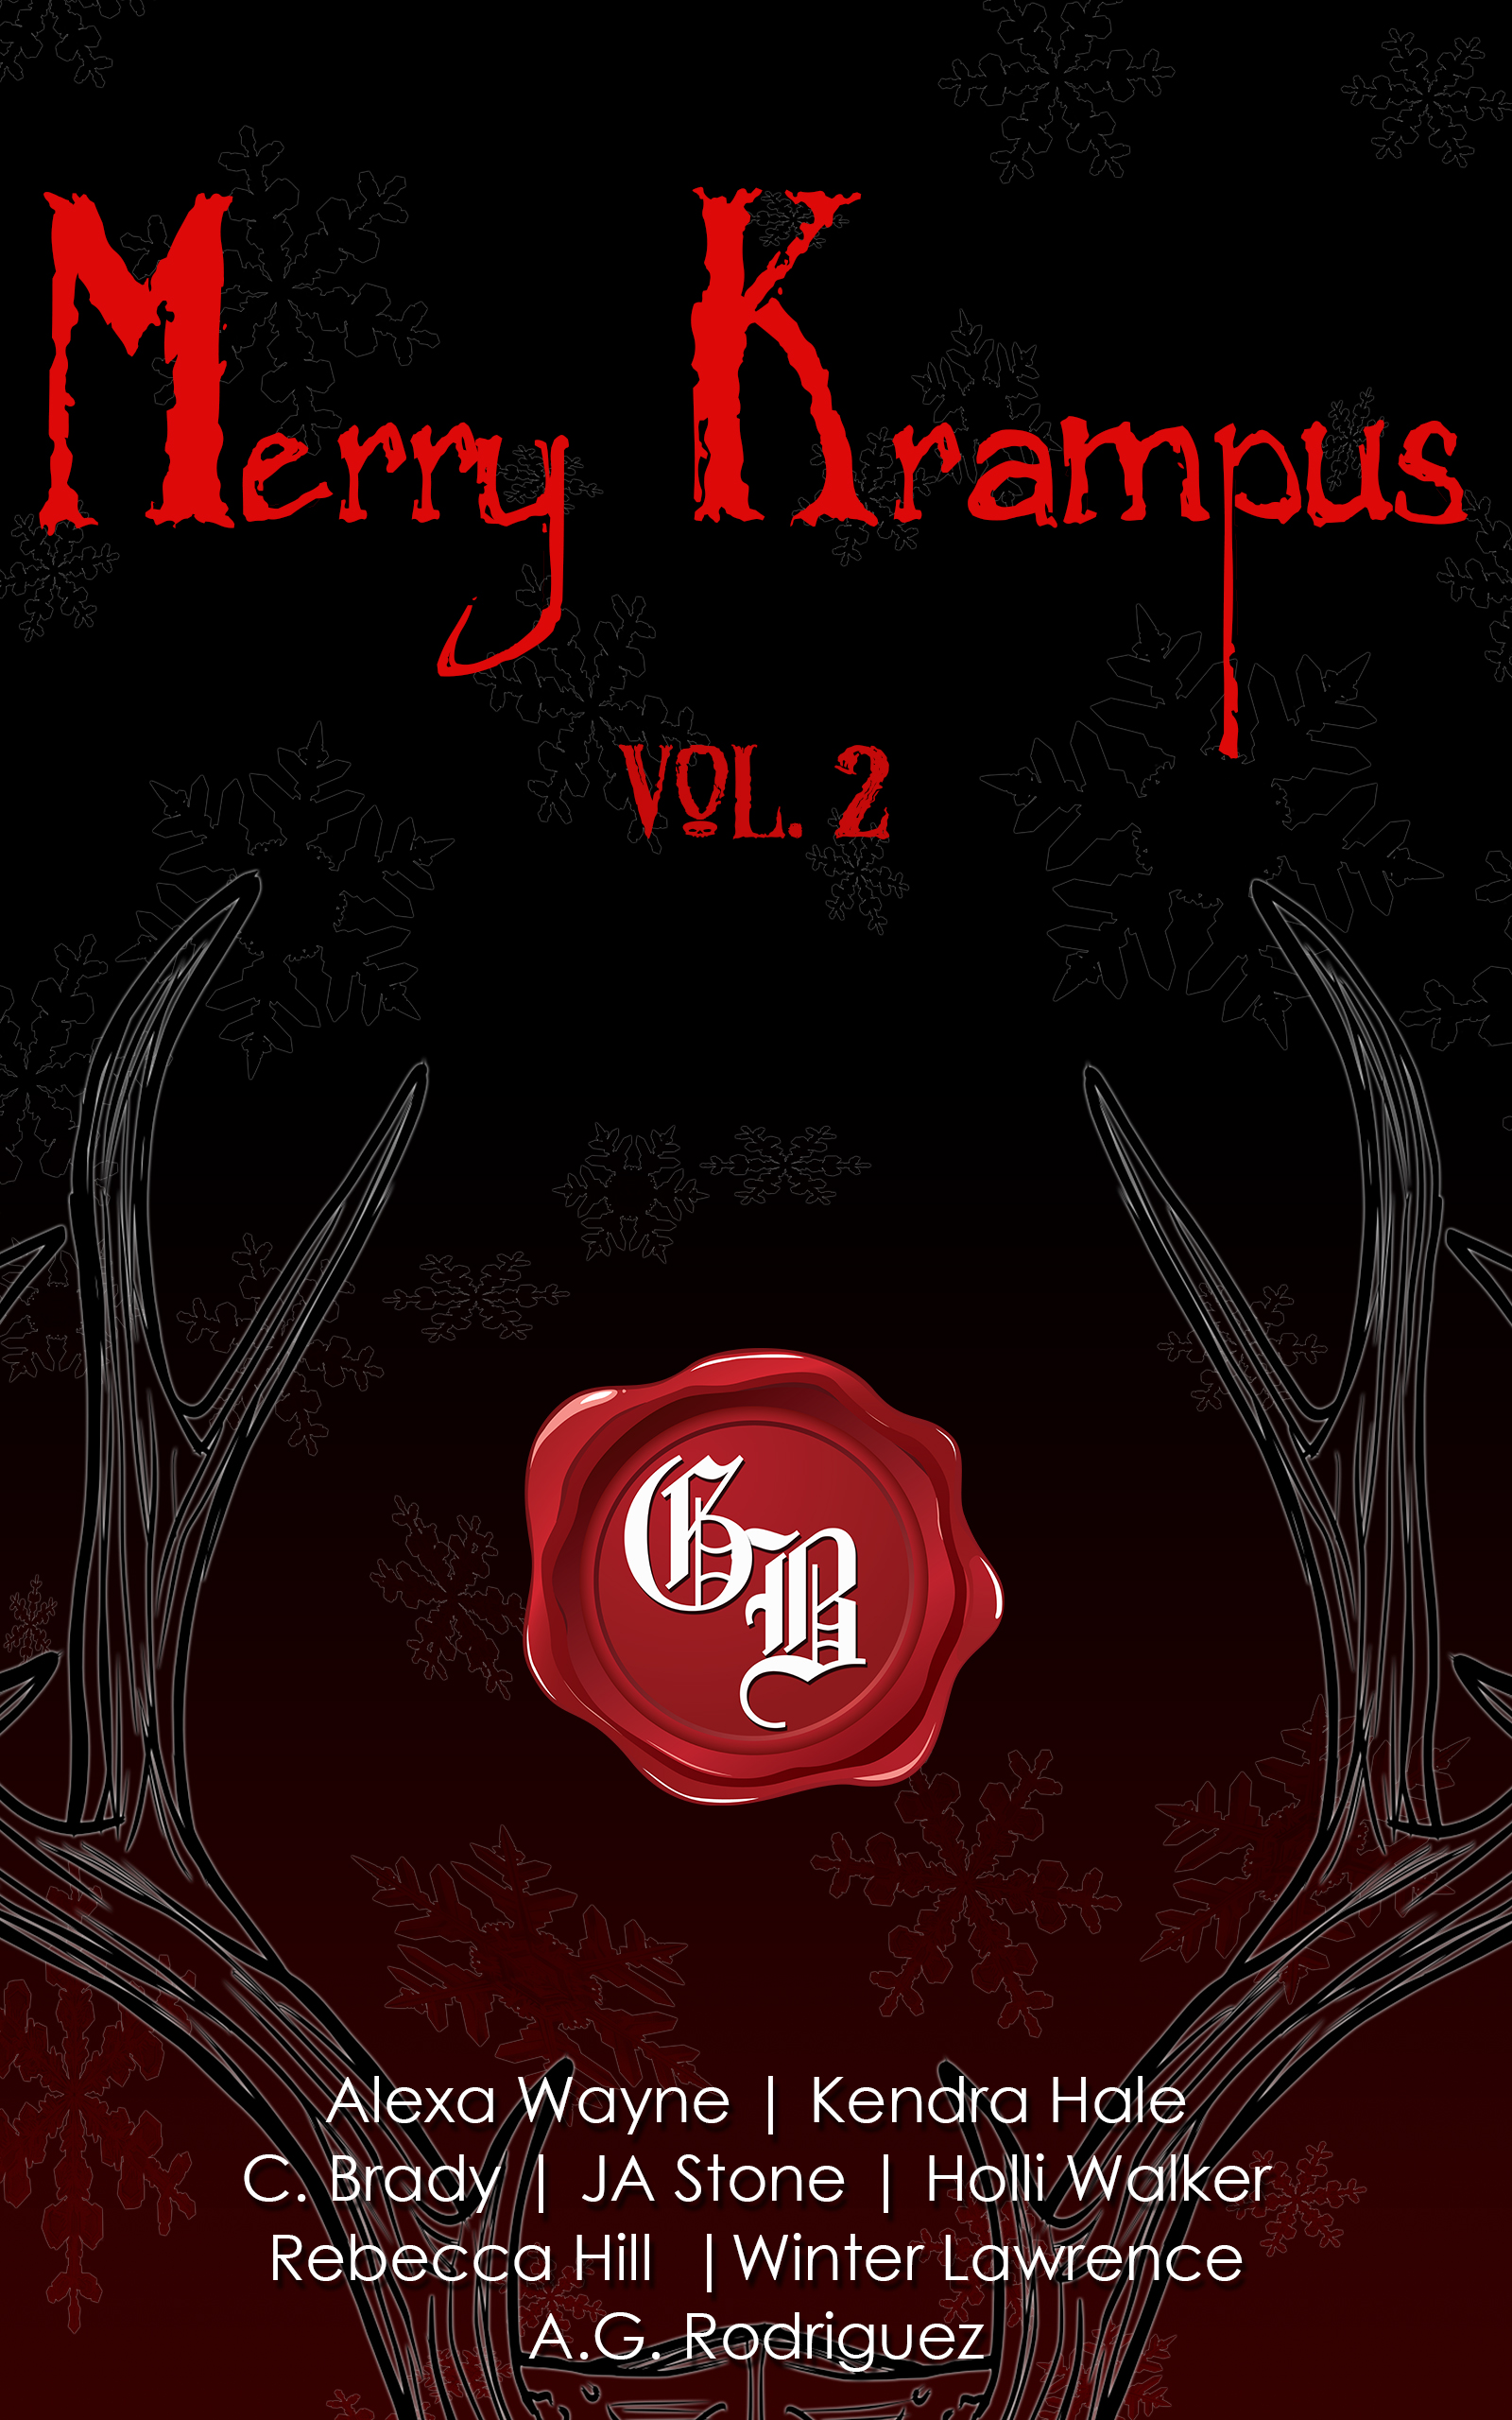 Merry Krampus Vol. 2 by Gothic Bite Magazine